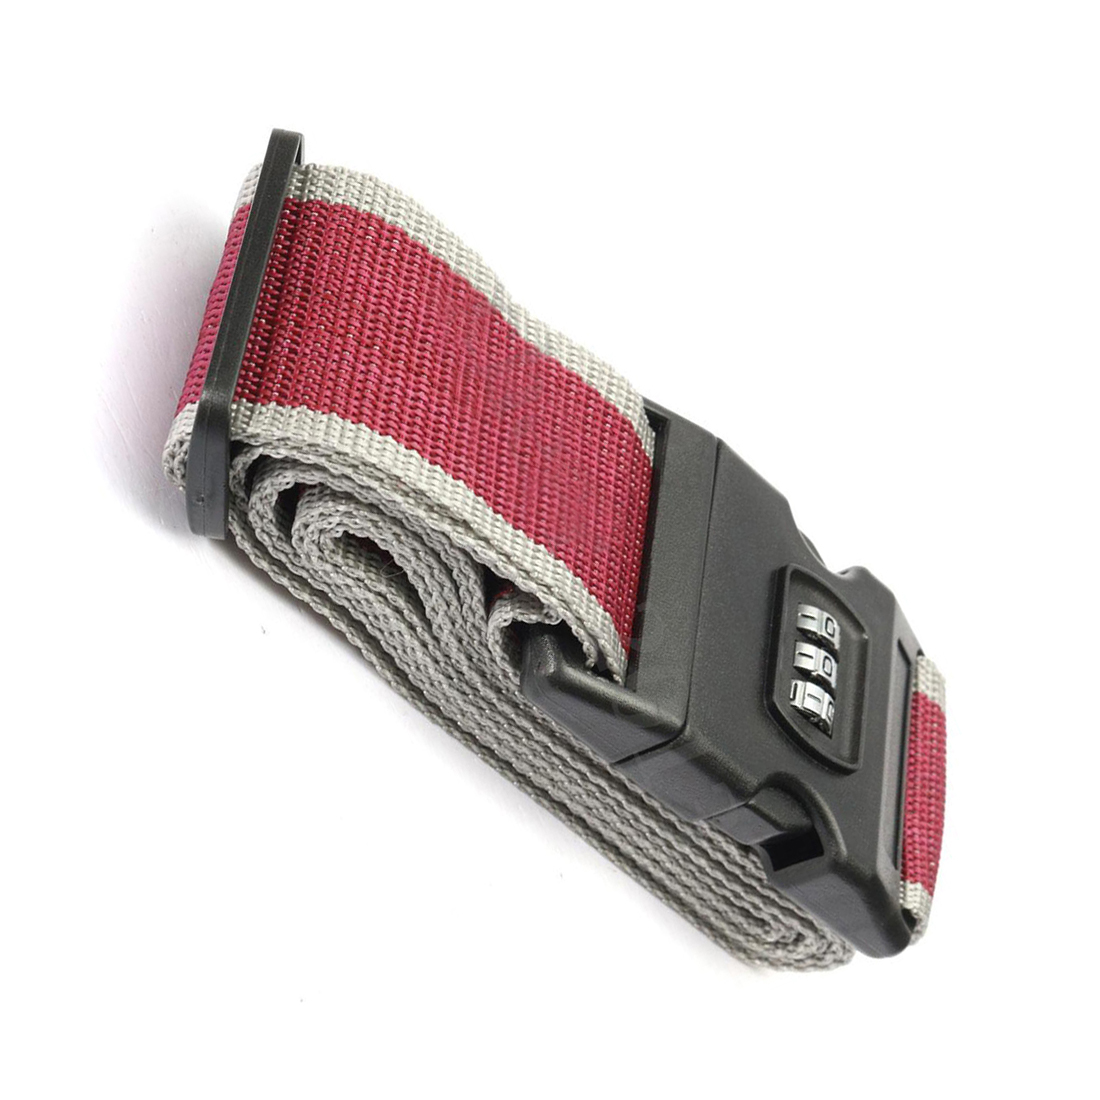 Safety belt Belt Lock Combination Travel Luggage Suitcase band color:gray red maritime safety